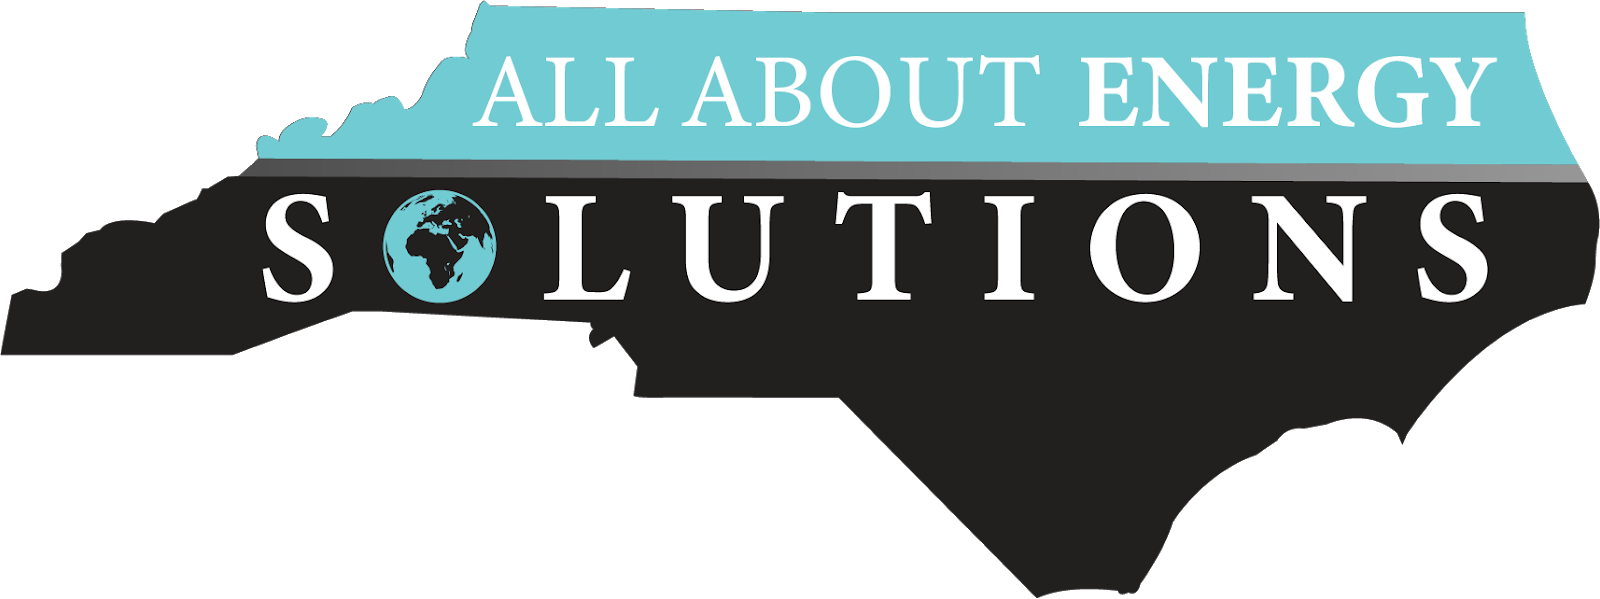 All About Energy Solutions logo